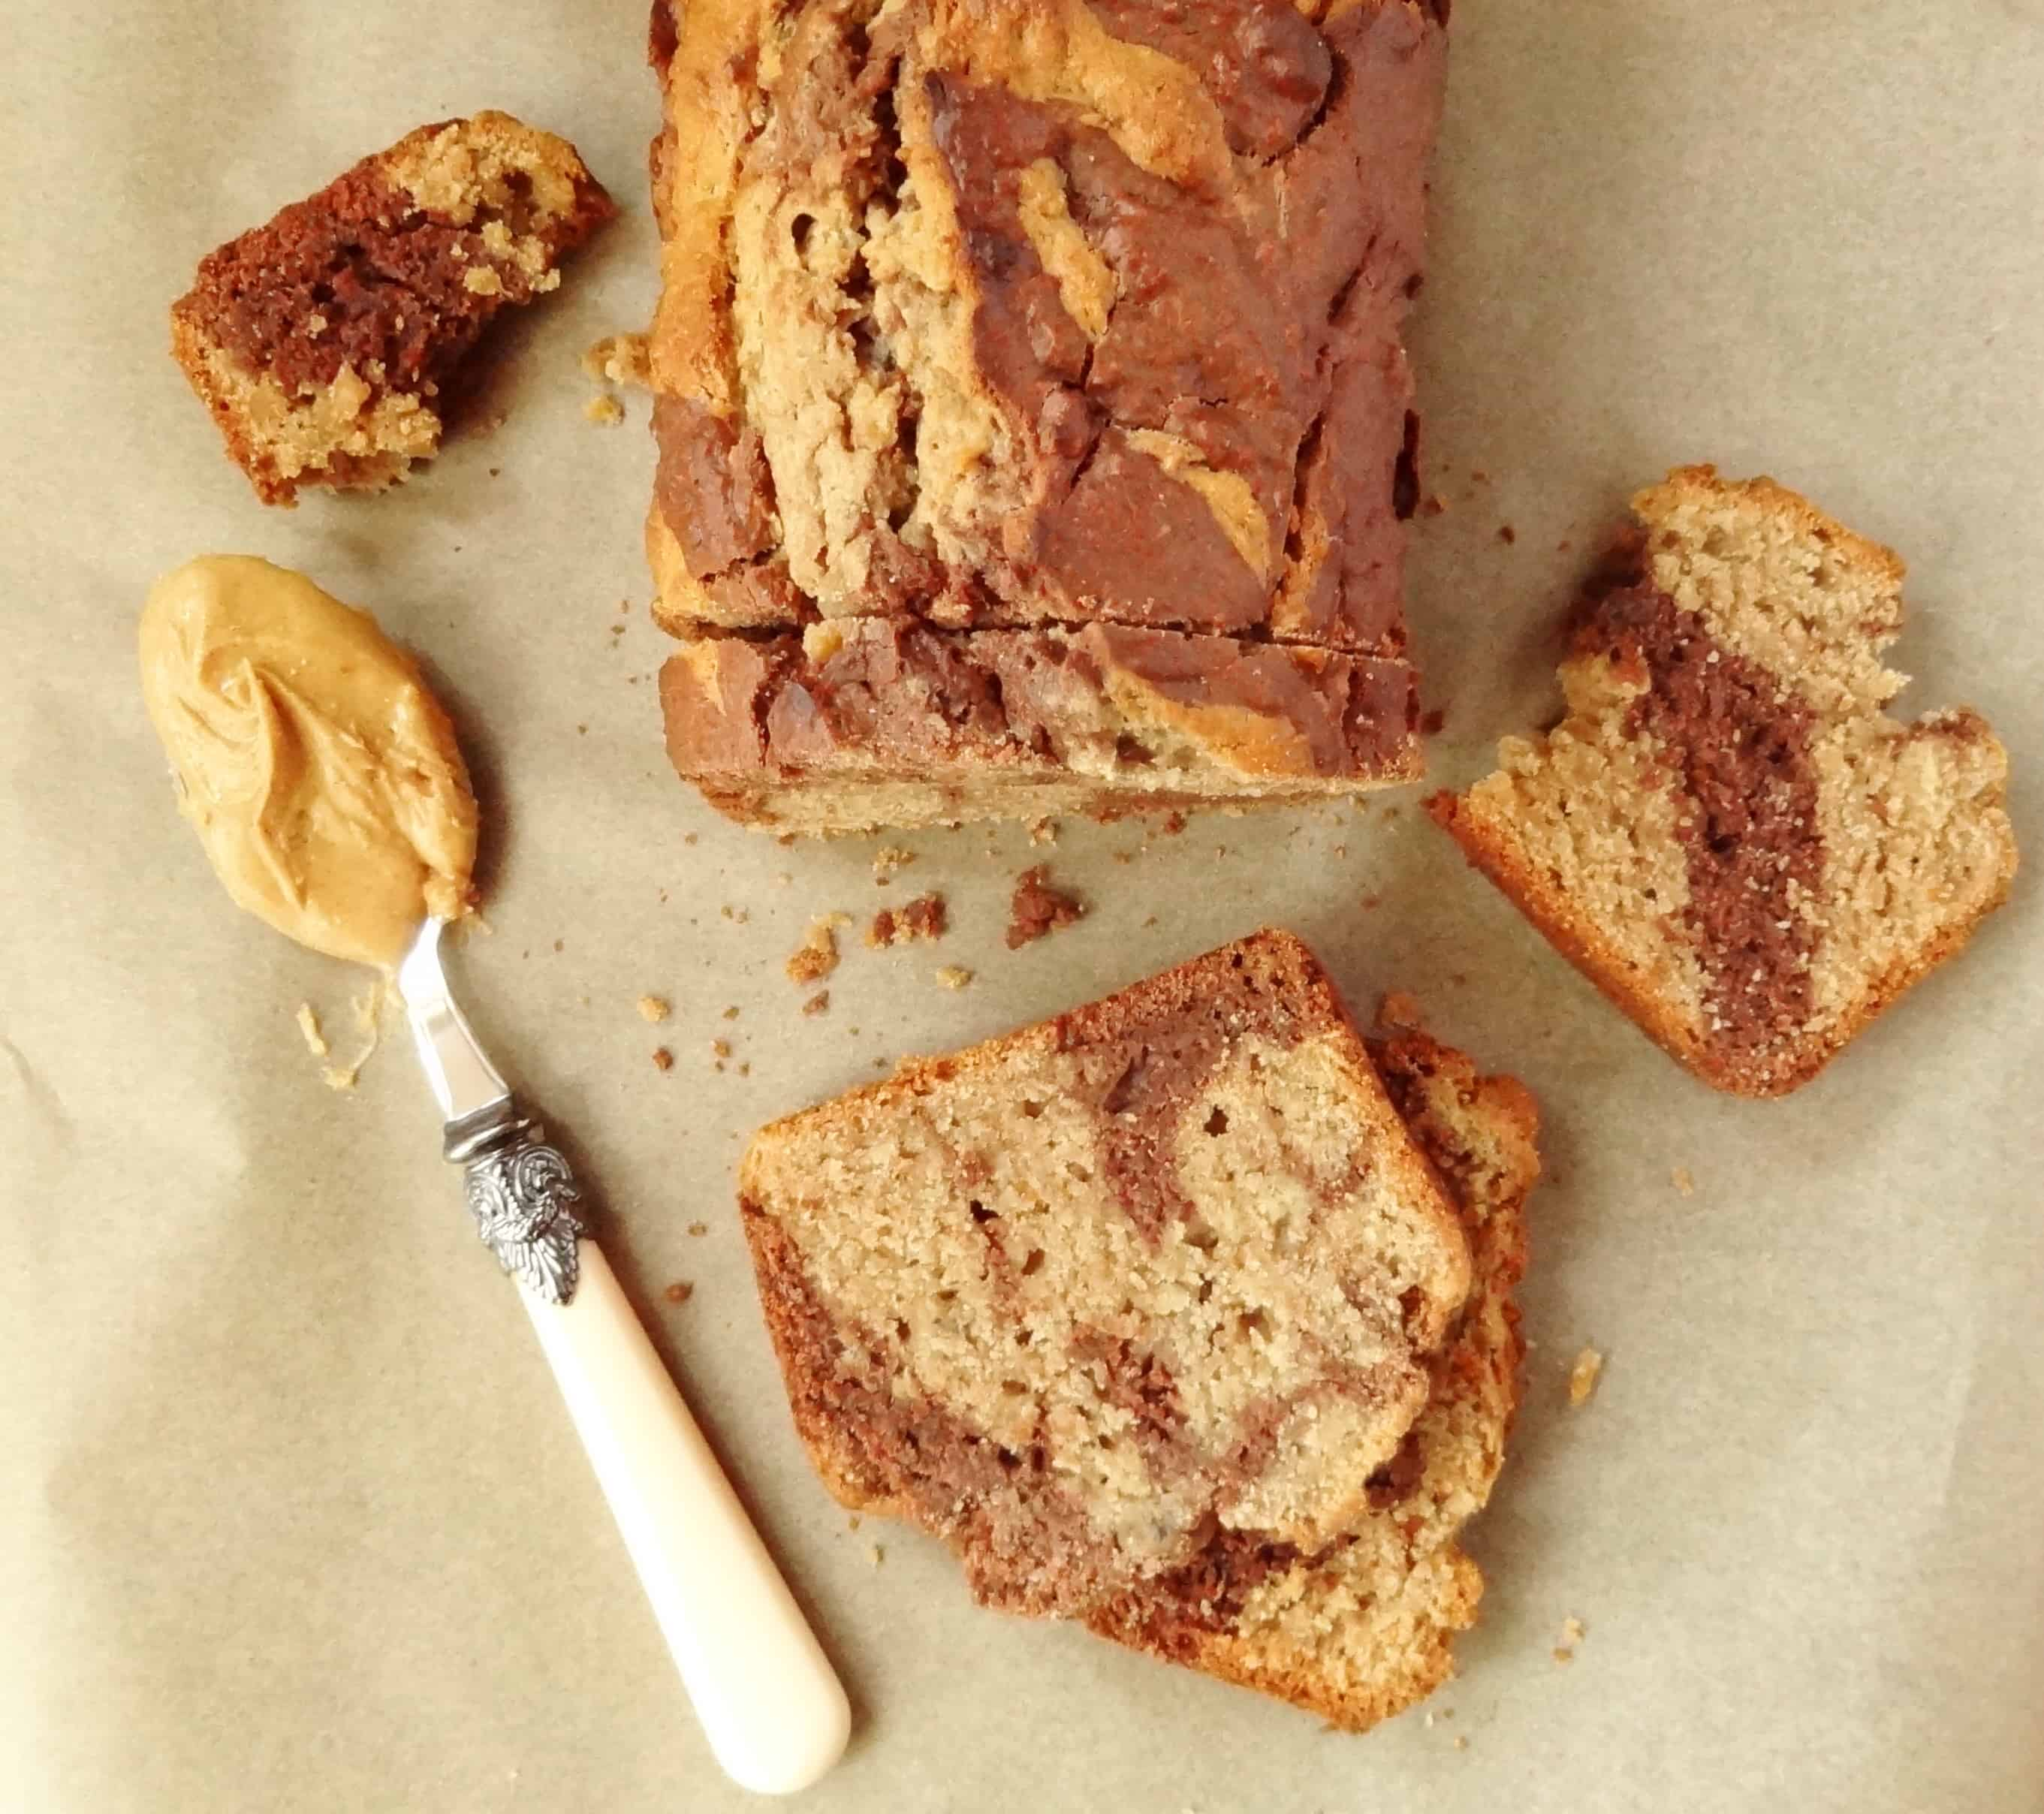 marbled chocolate peanut butter banana bread